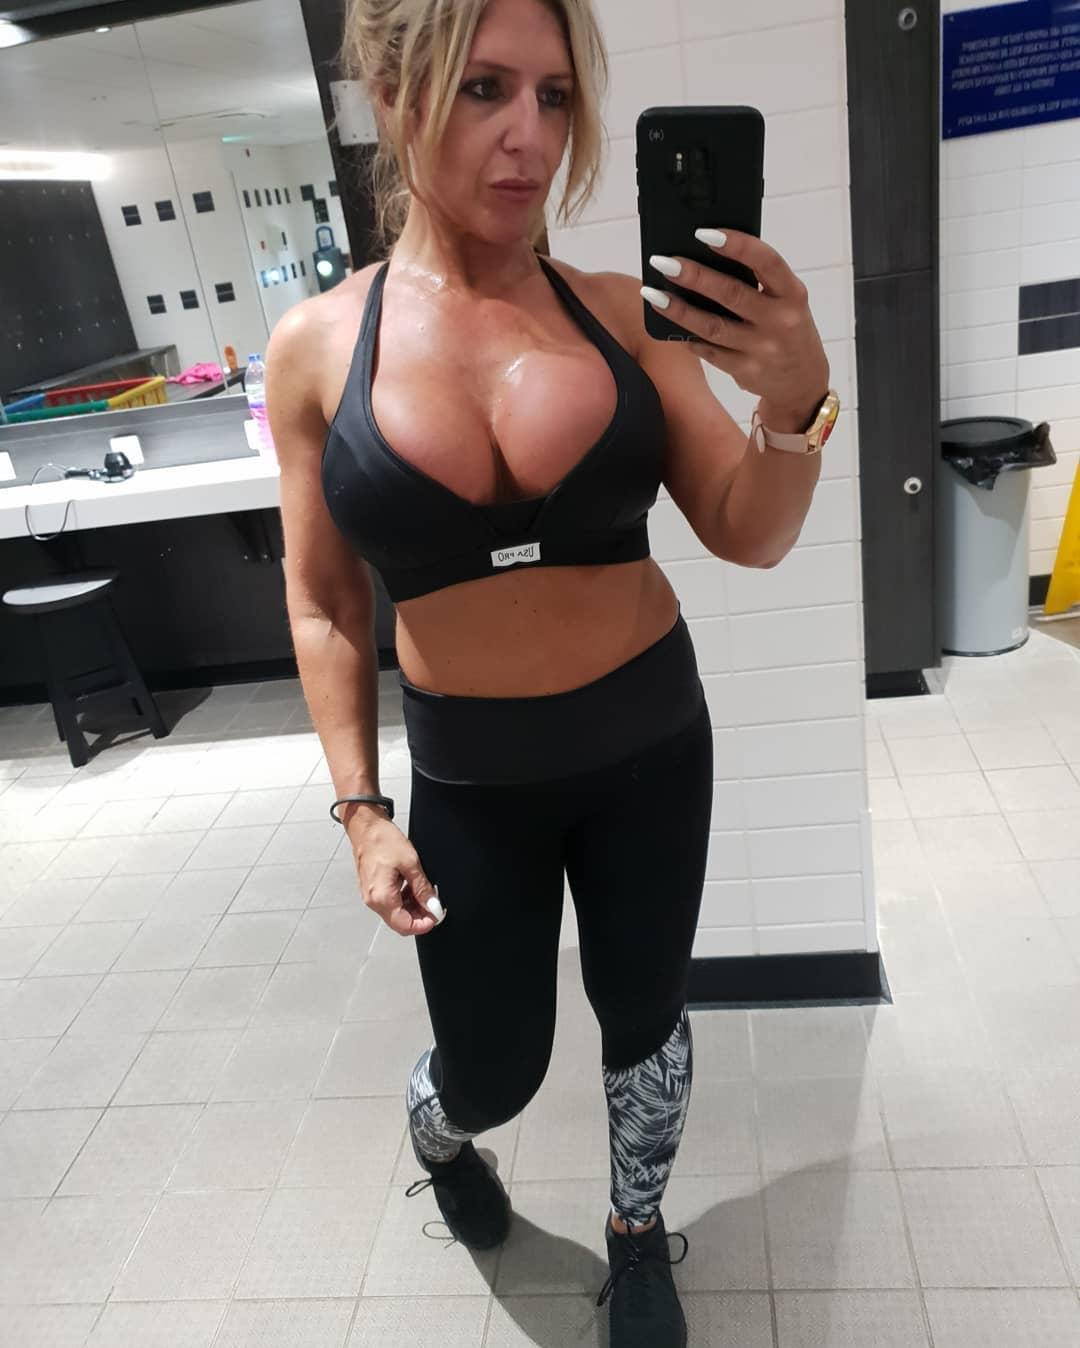 british soccer mom flaunting her stunning rack and fitness body picture 12